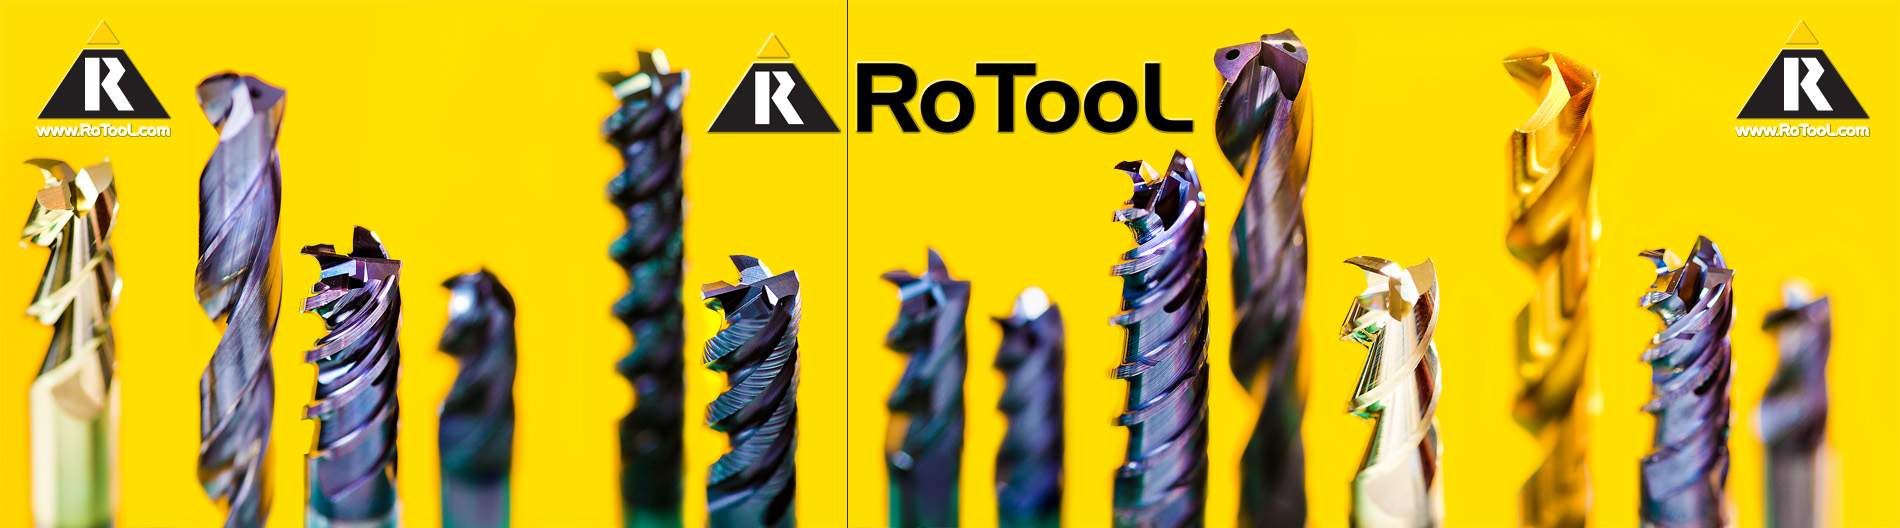 rotool-preview.jpg